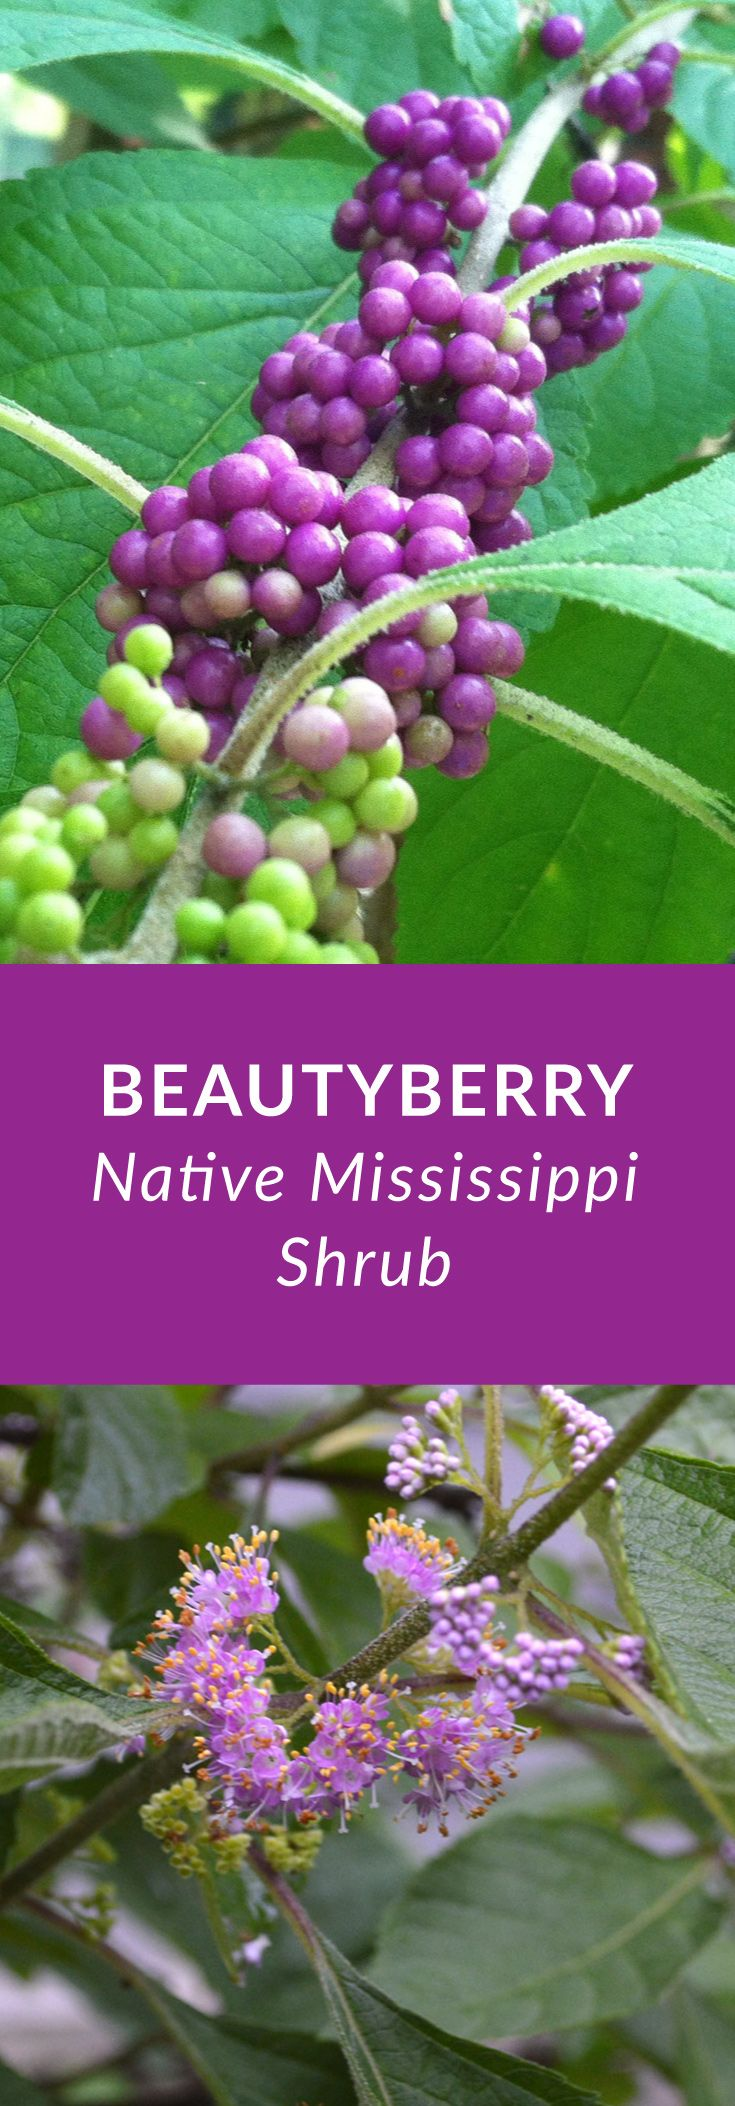 edible ginger plants mississippi state univ gardening beautyberry is a mississippi perennial native shrub small lavender flowers in summer bright purple